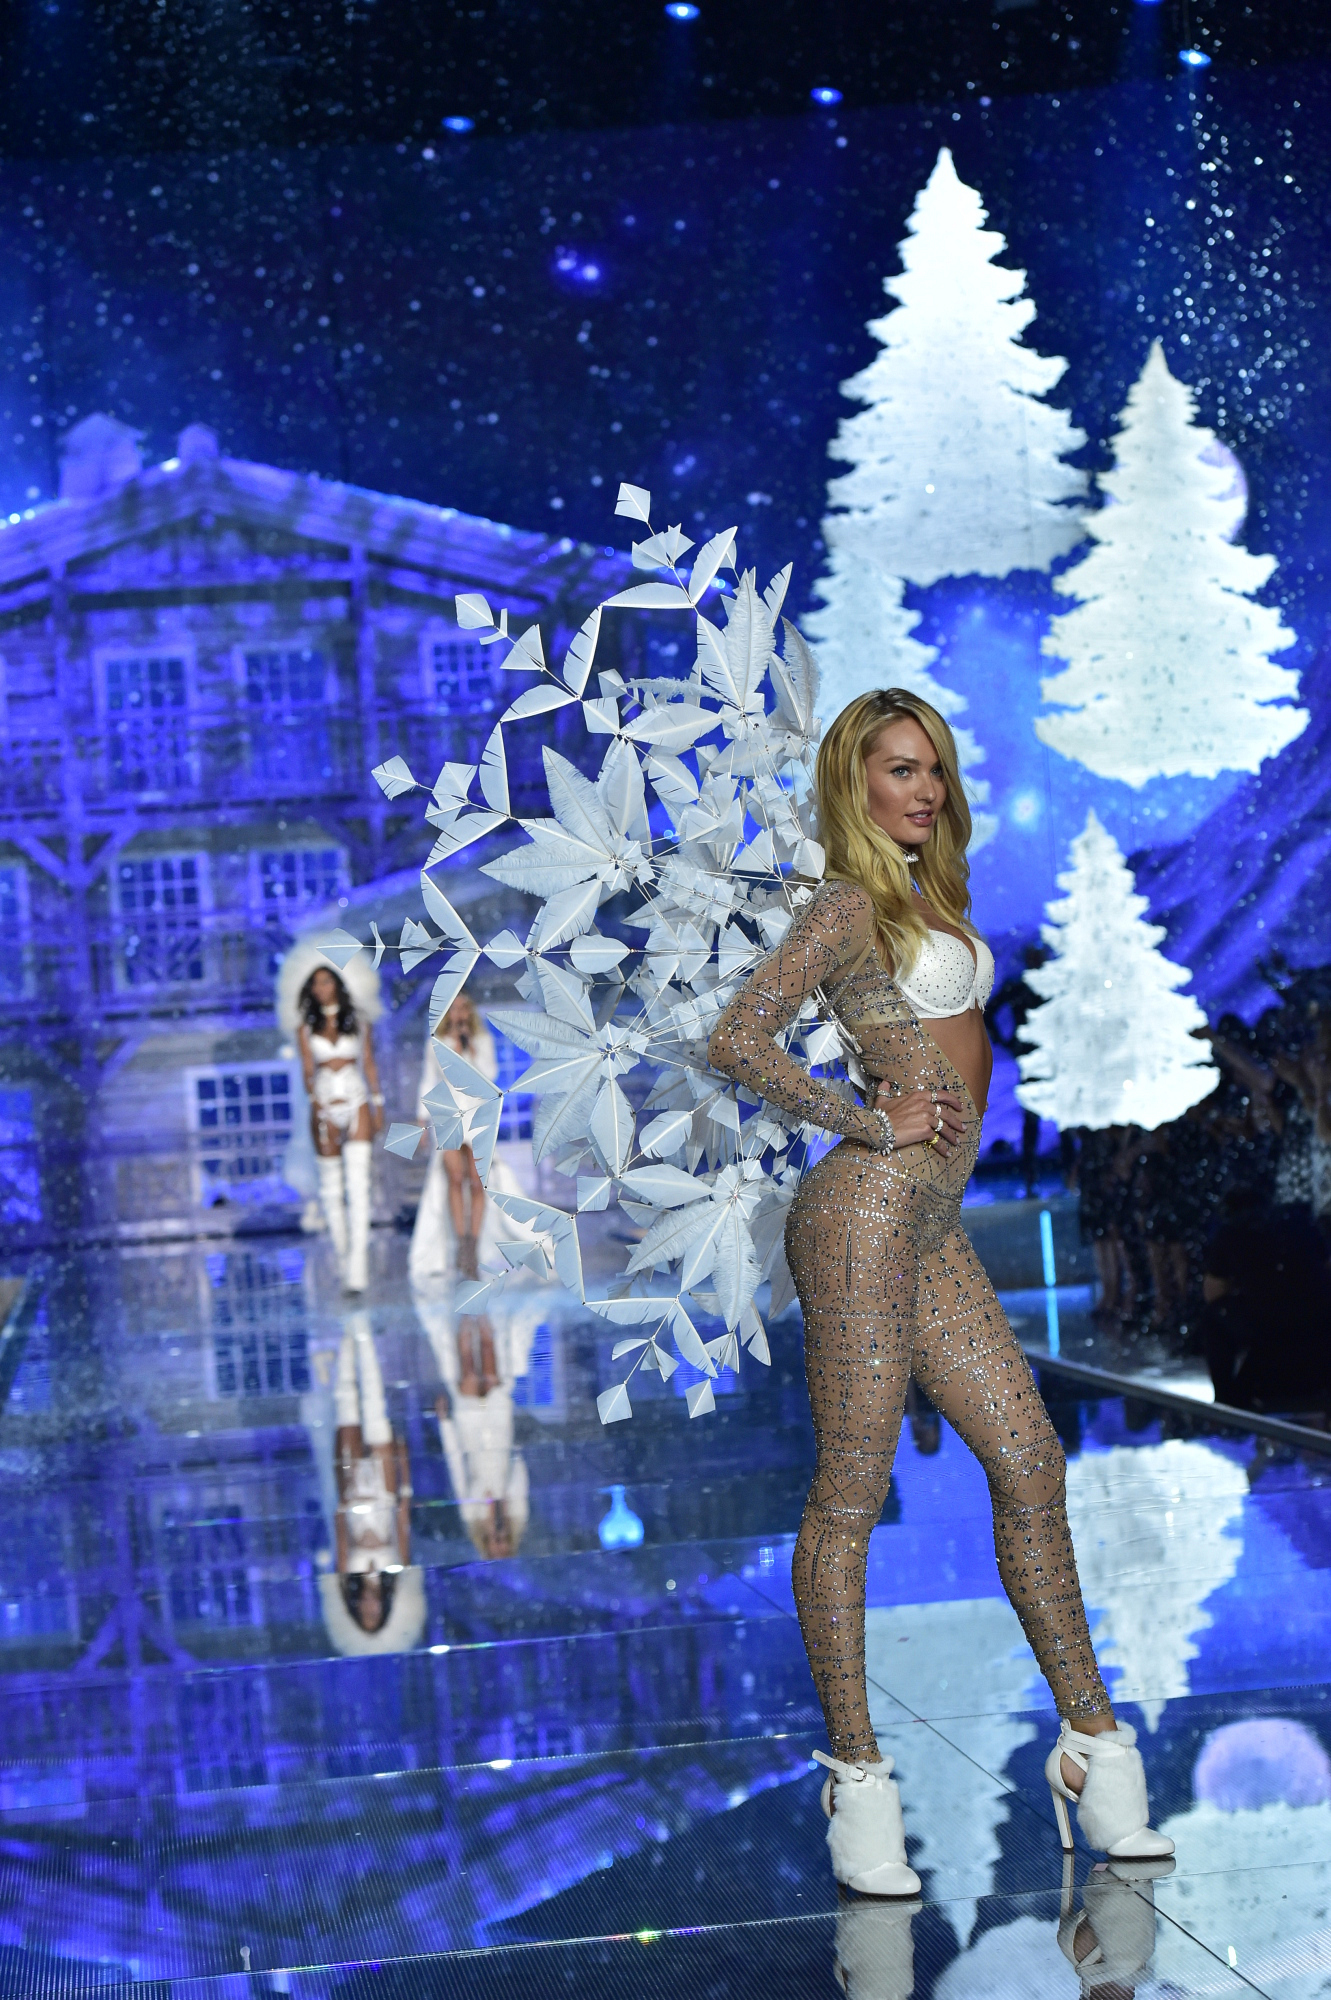 The fifth segment is Ice Angels